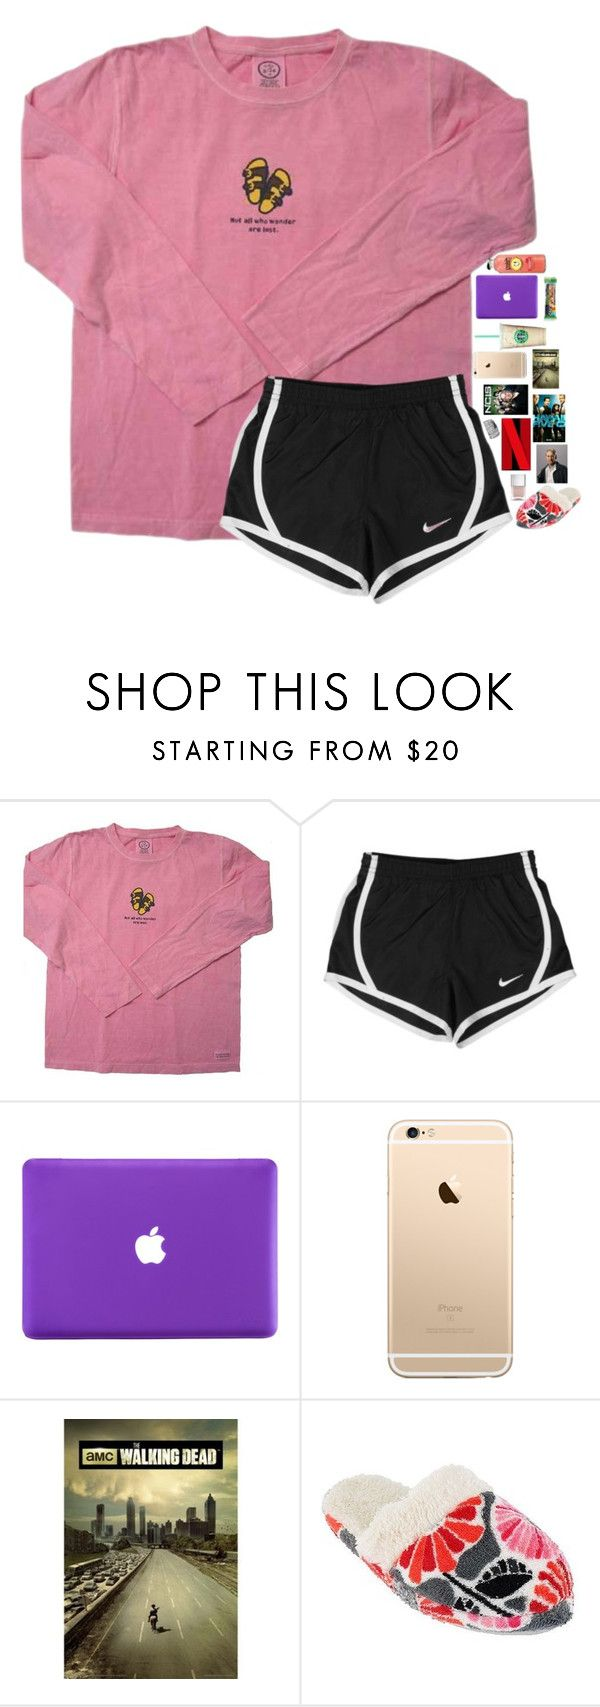 """""""Netflix and Chill contest entry"""" by breezerw ❤ liked on Polyvore featuring NIKE, Vera Bradley and Nails Inc."""